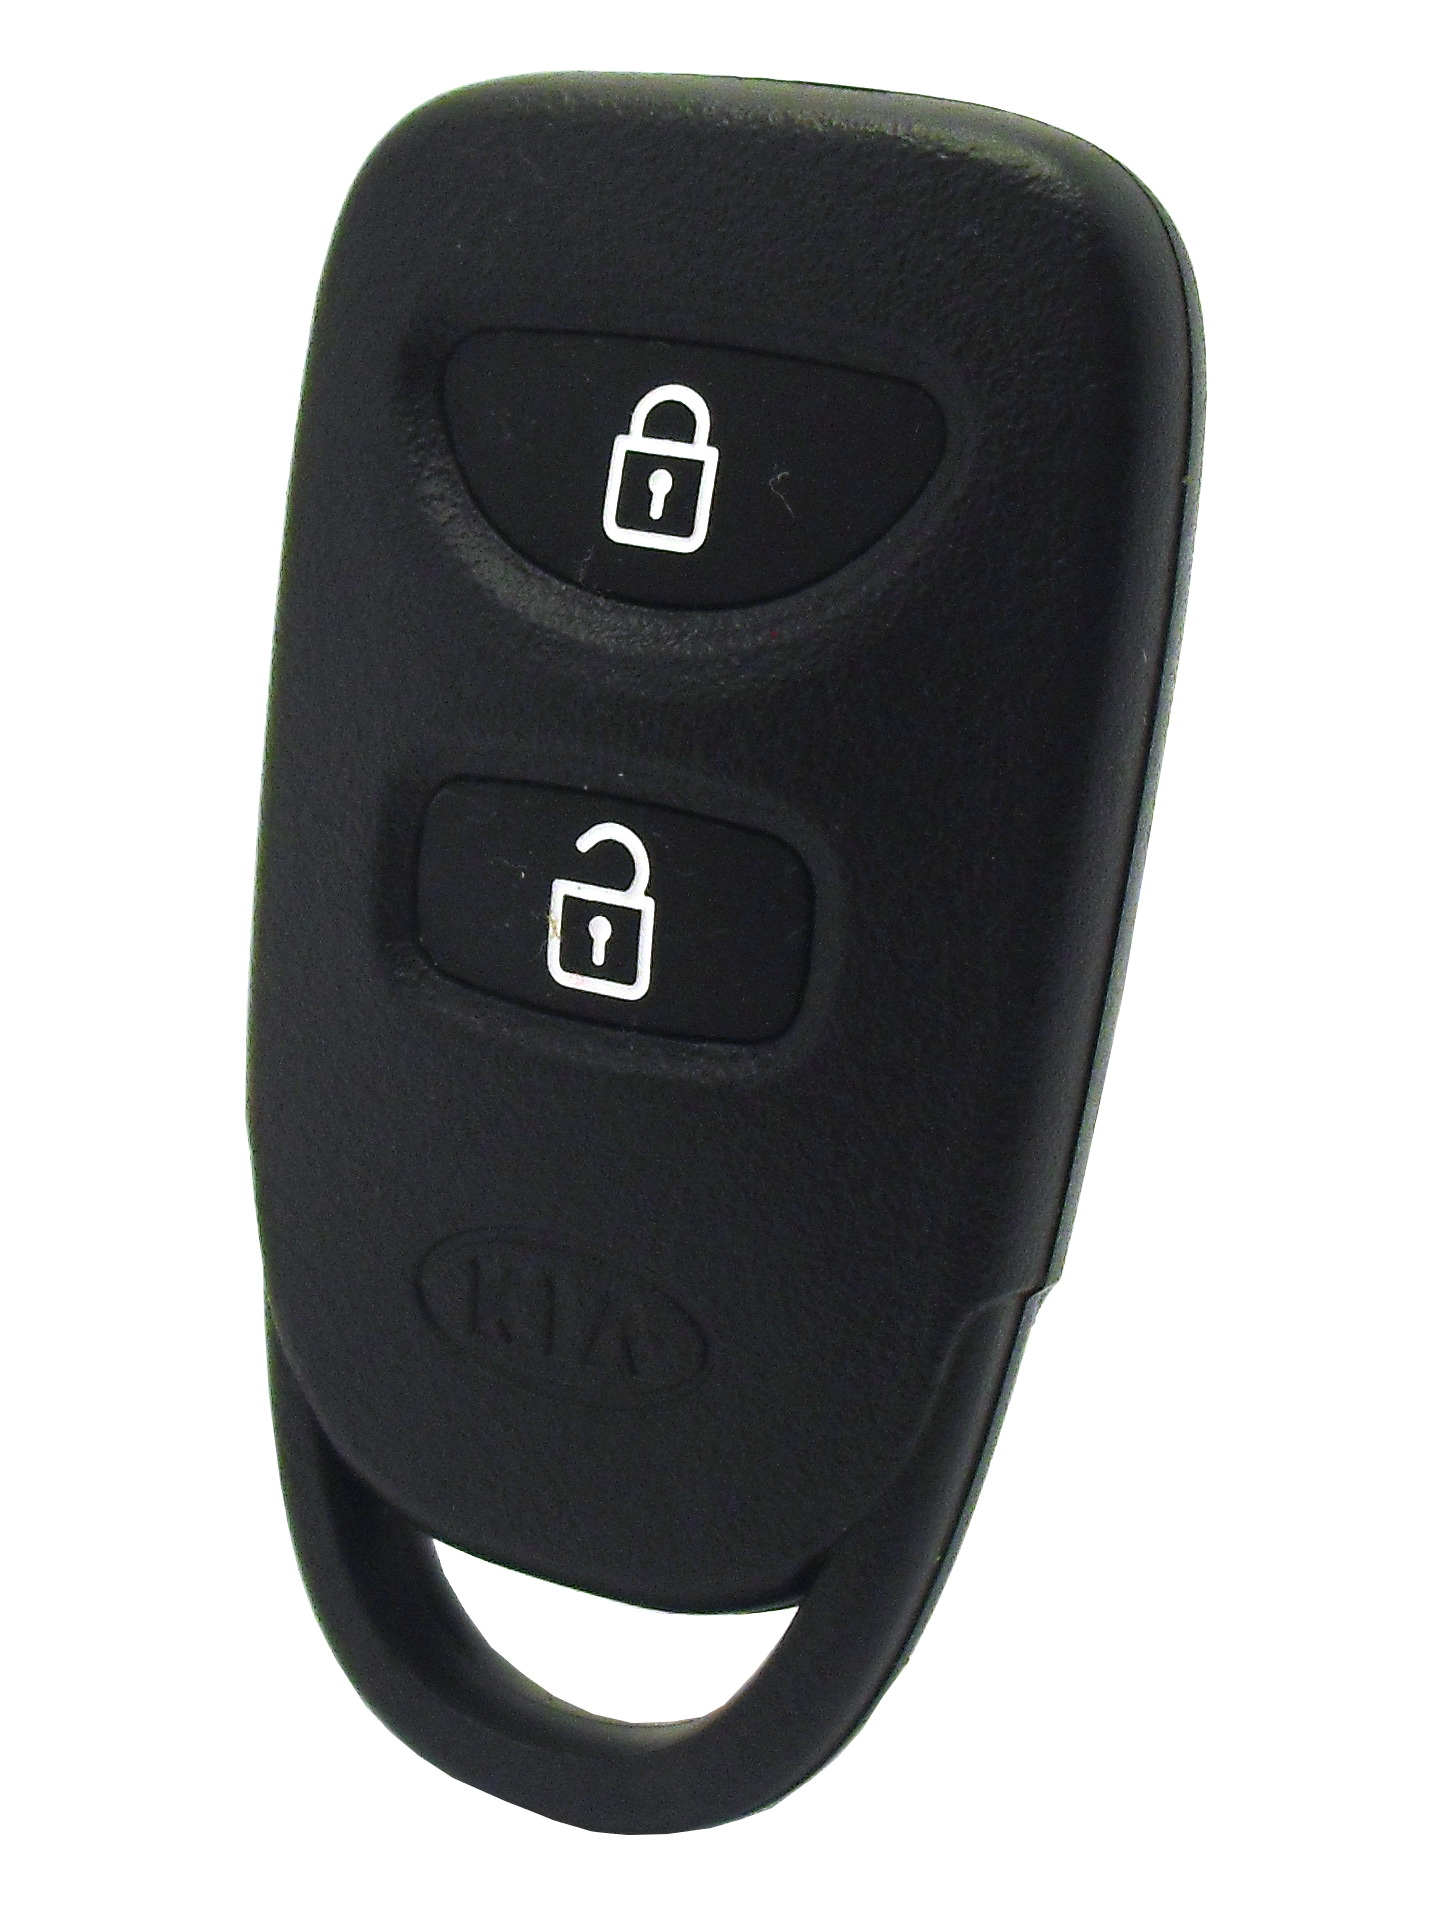 Keyless Entry Remote - 3 button